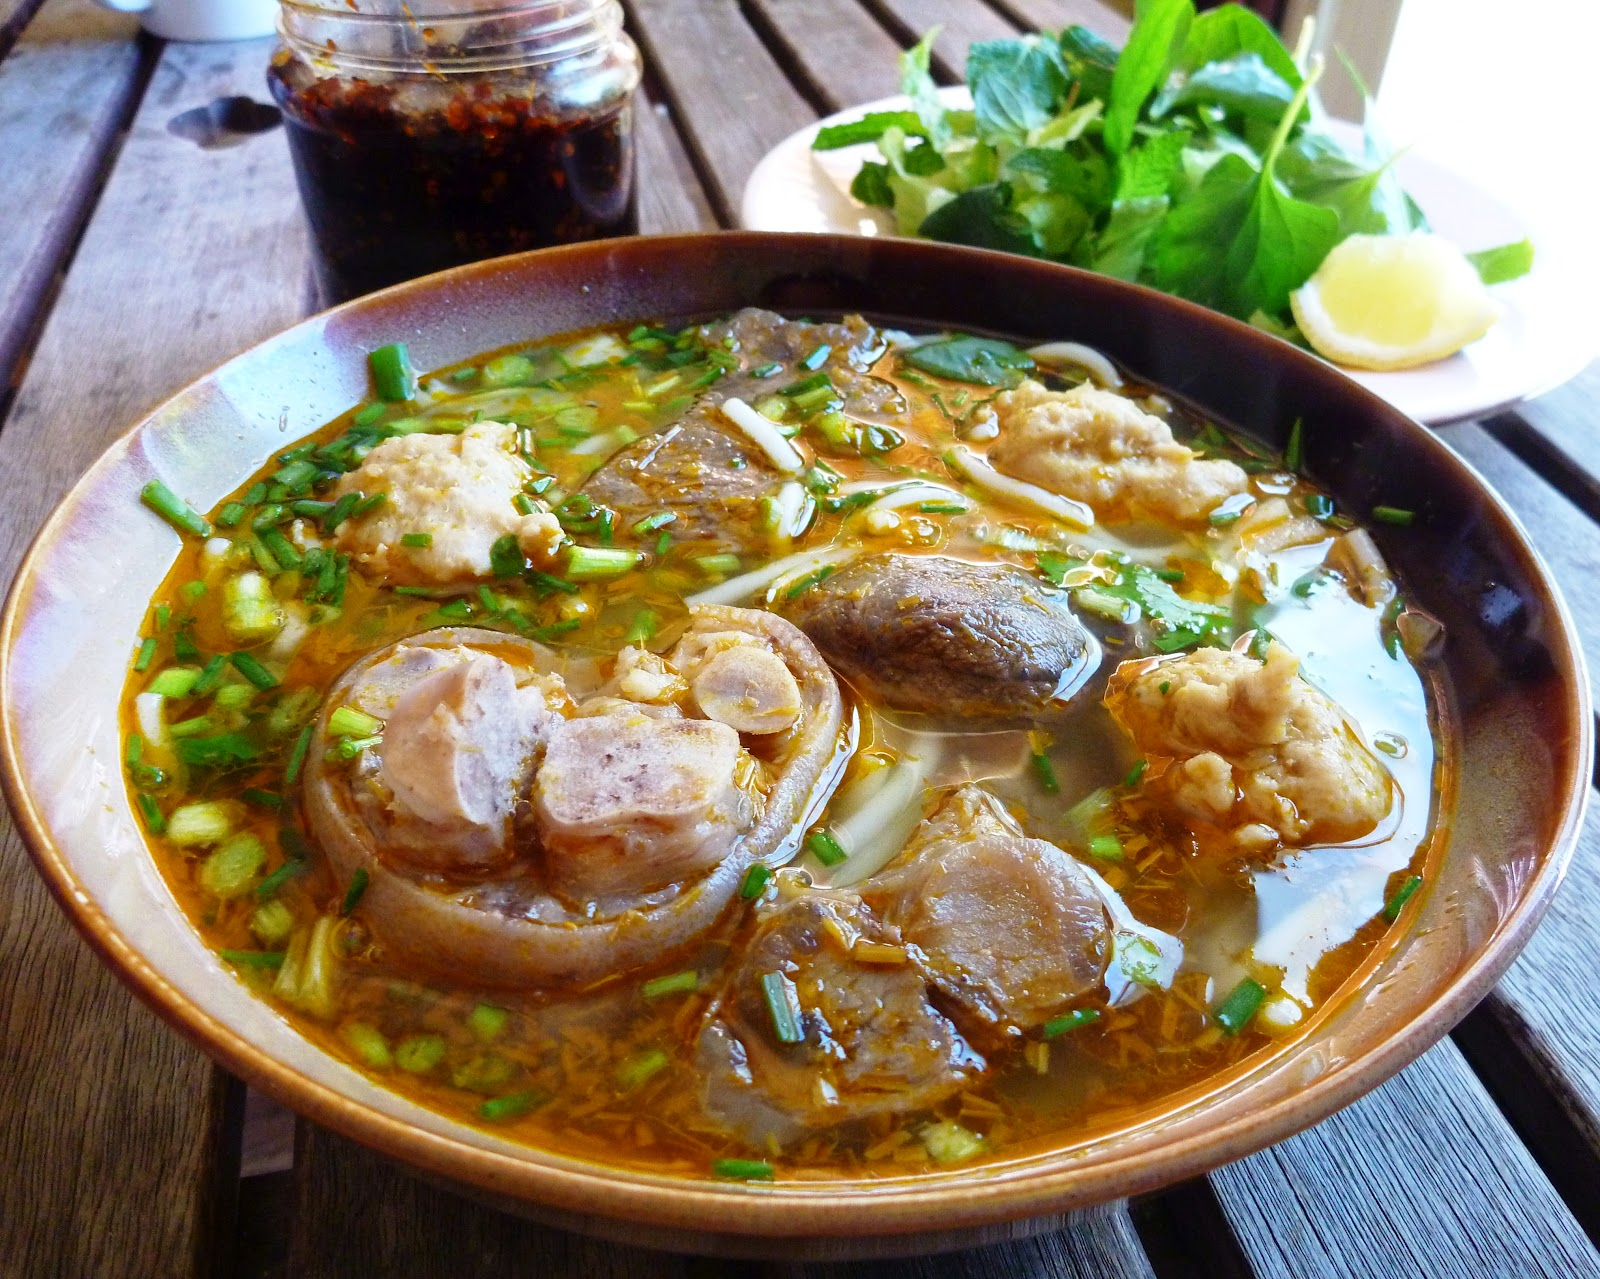 Don't forget to enjoy Bun Bo Hue when you are in Saigon